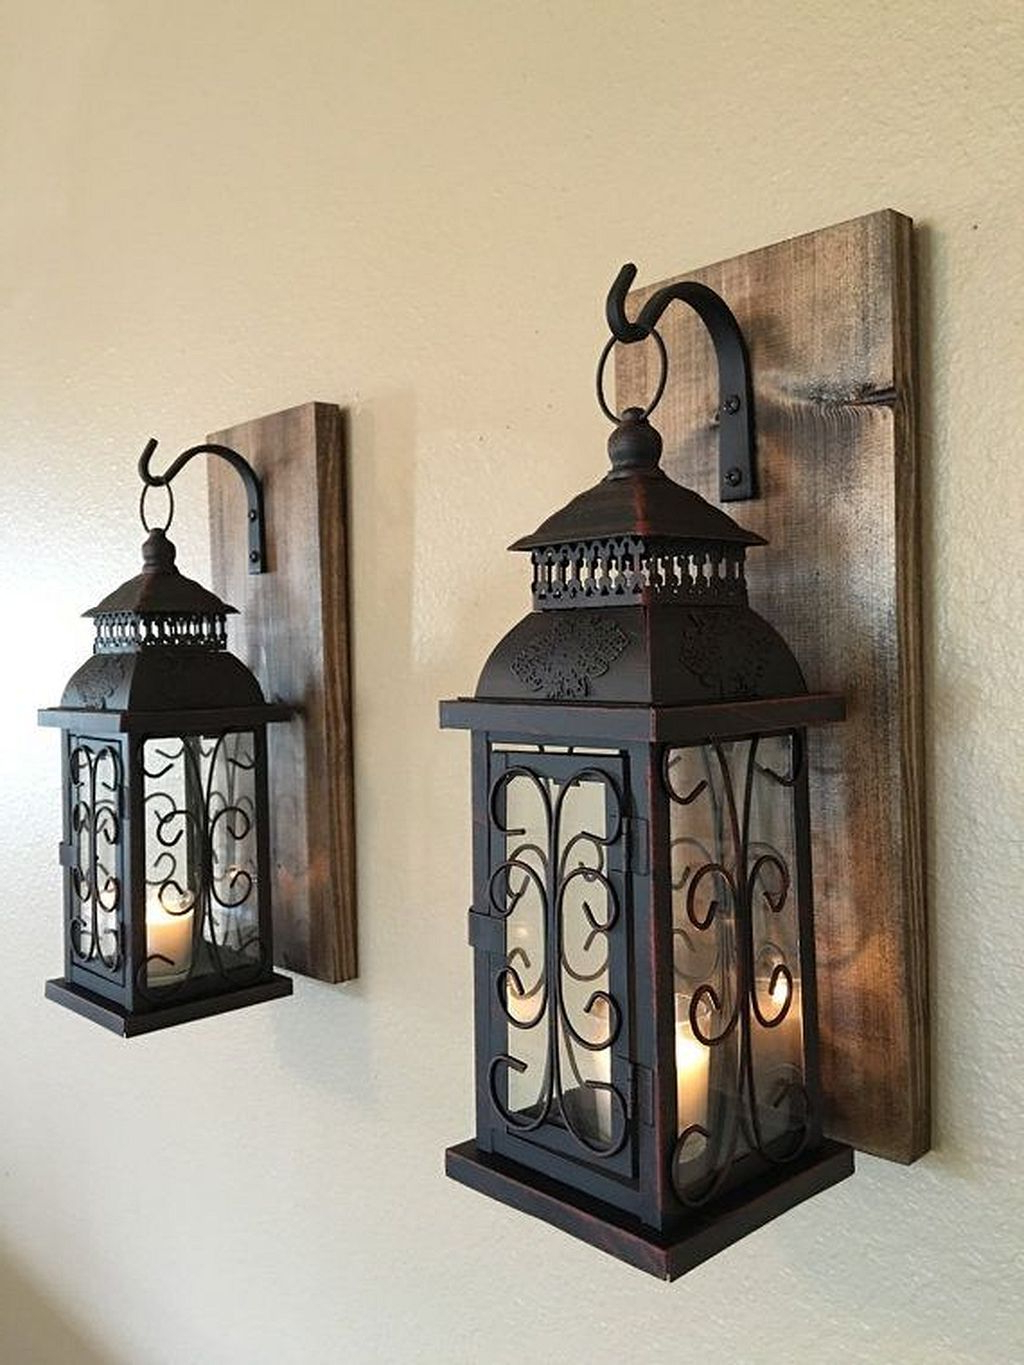 Rustic Wall Decor, Lanterns With Regard To Most Up To Date Maxwell Wood And Metal Wall Decor (View 13 of 20)